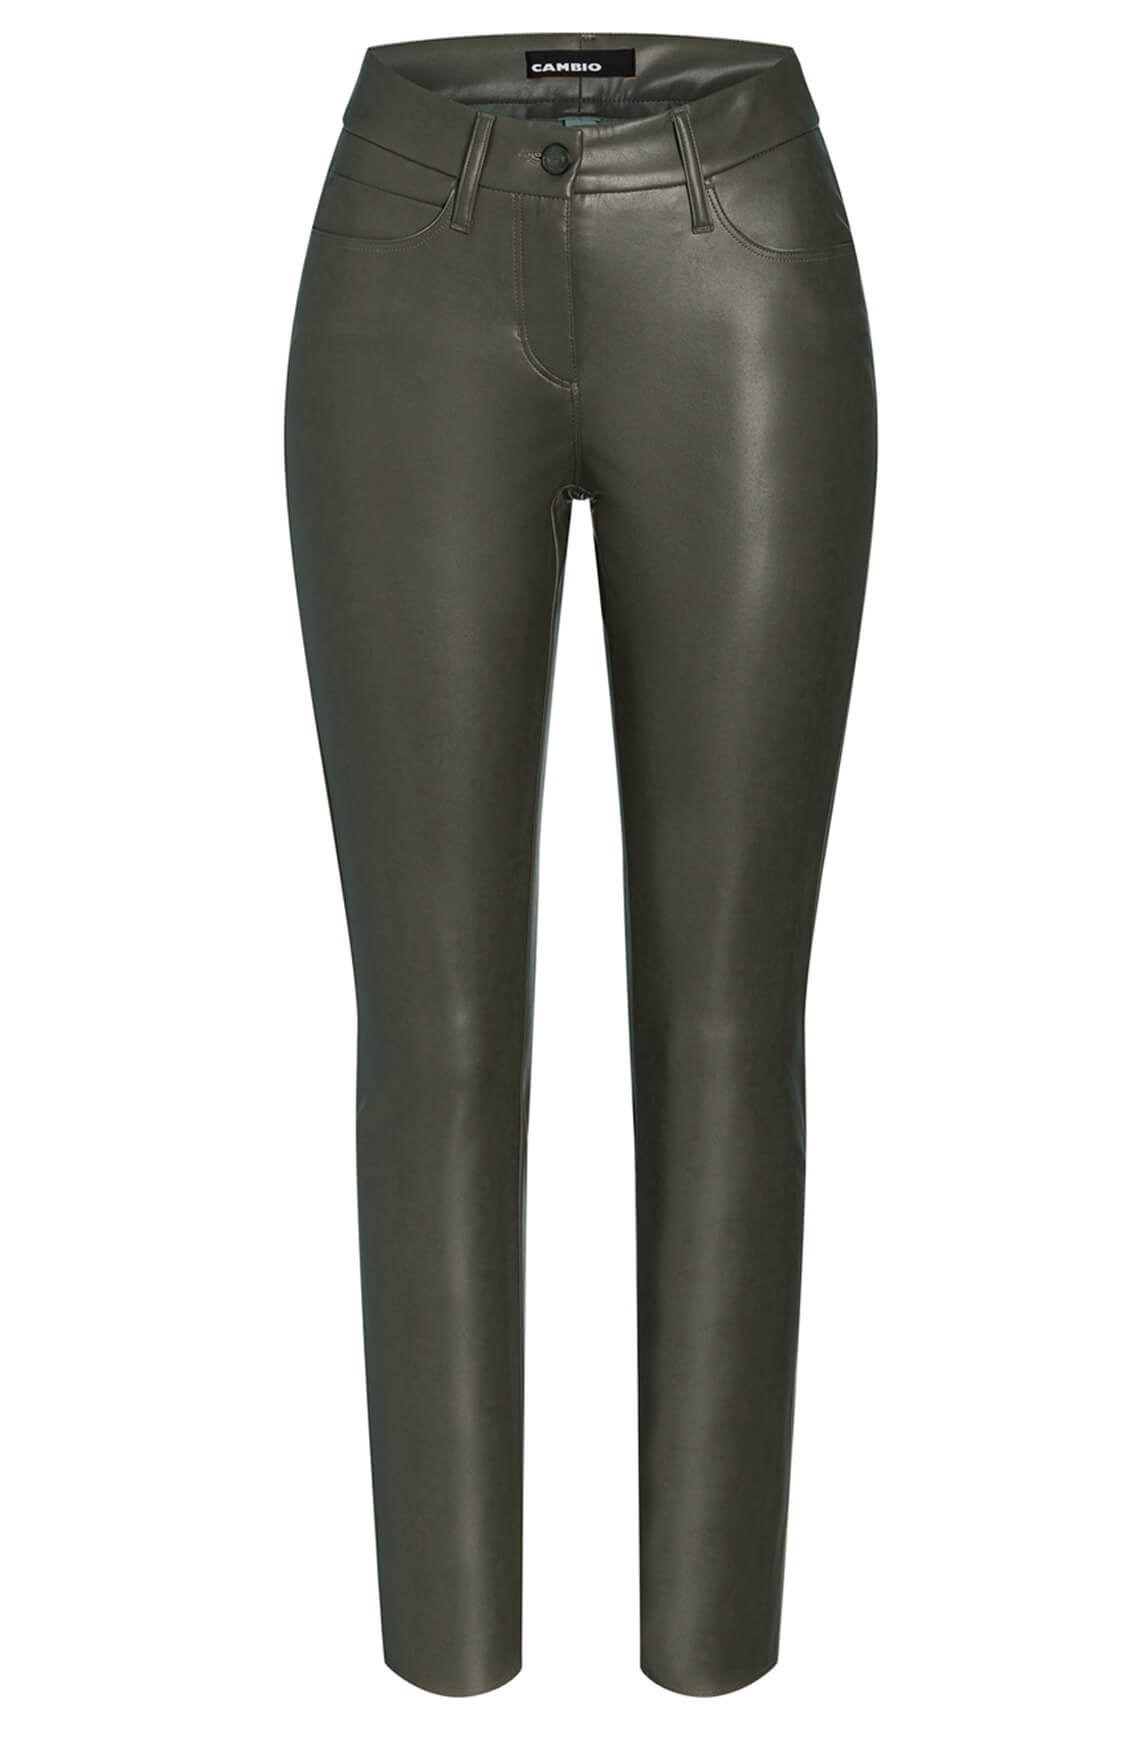 Cambio Dames Ray fake leather broek groen